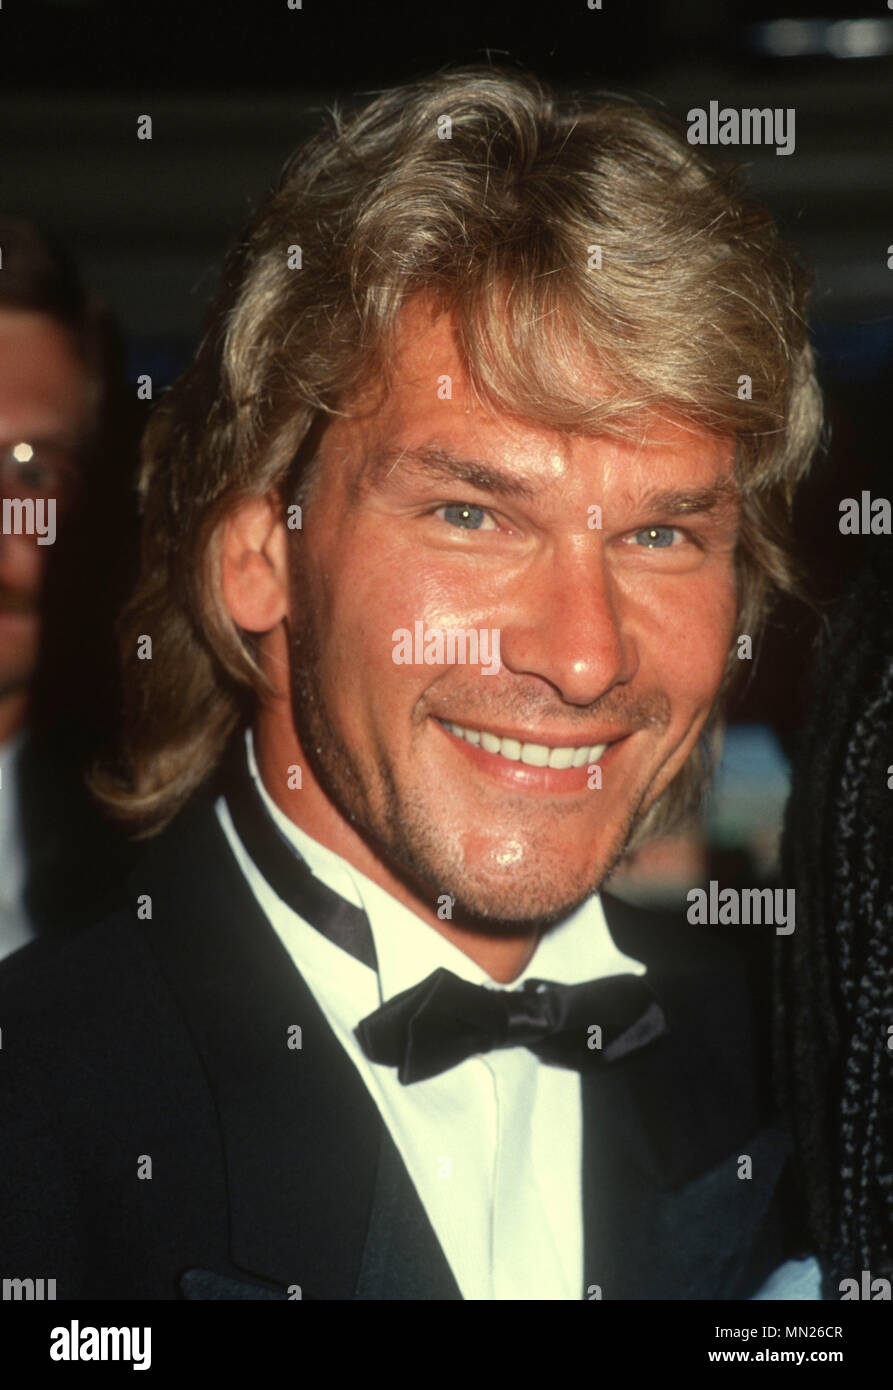 LOS ANGELES, CA - JULY 21:  Actor Patrick Swayze attends black tie dinner honoring Whoopi Goldberg with Children's Choice Award on Crystal Harmony Cruise Ship on July 21, 1990 in Los Angeles, California. Photo by Barry King/Alamy Stock Photo - Stock Image